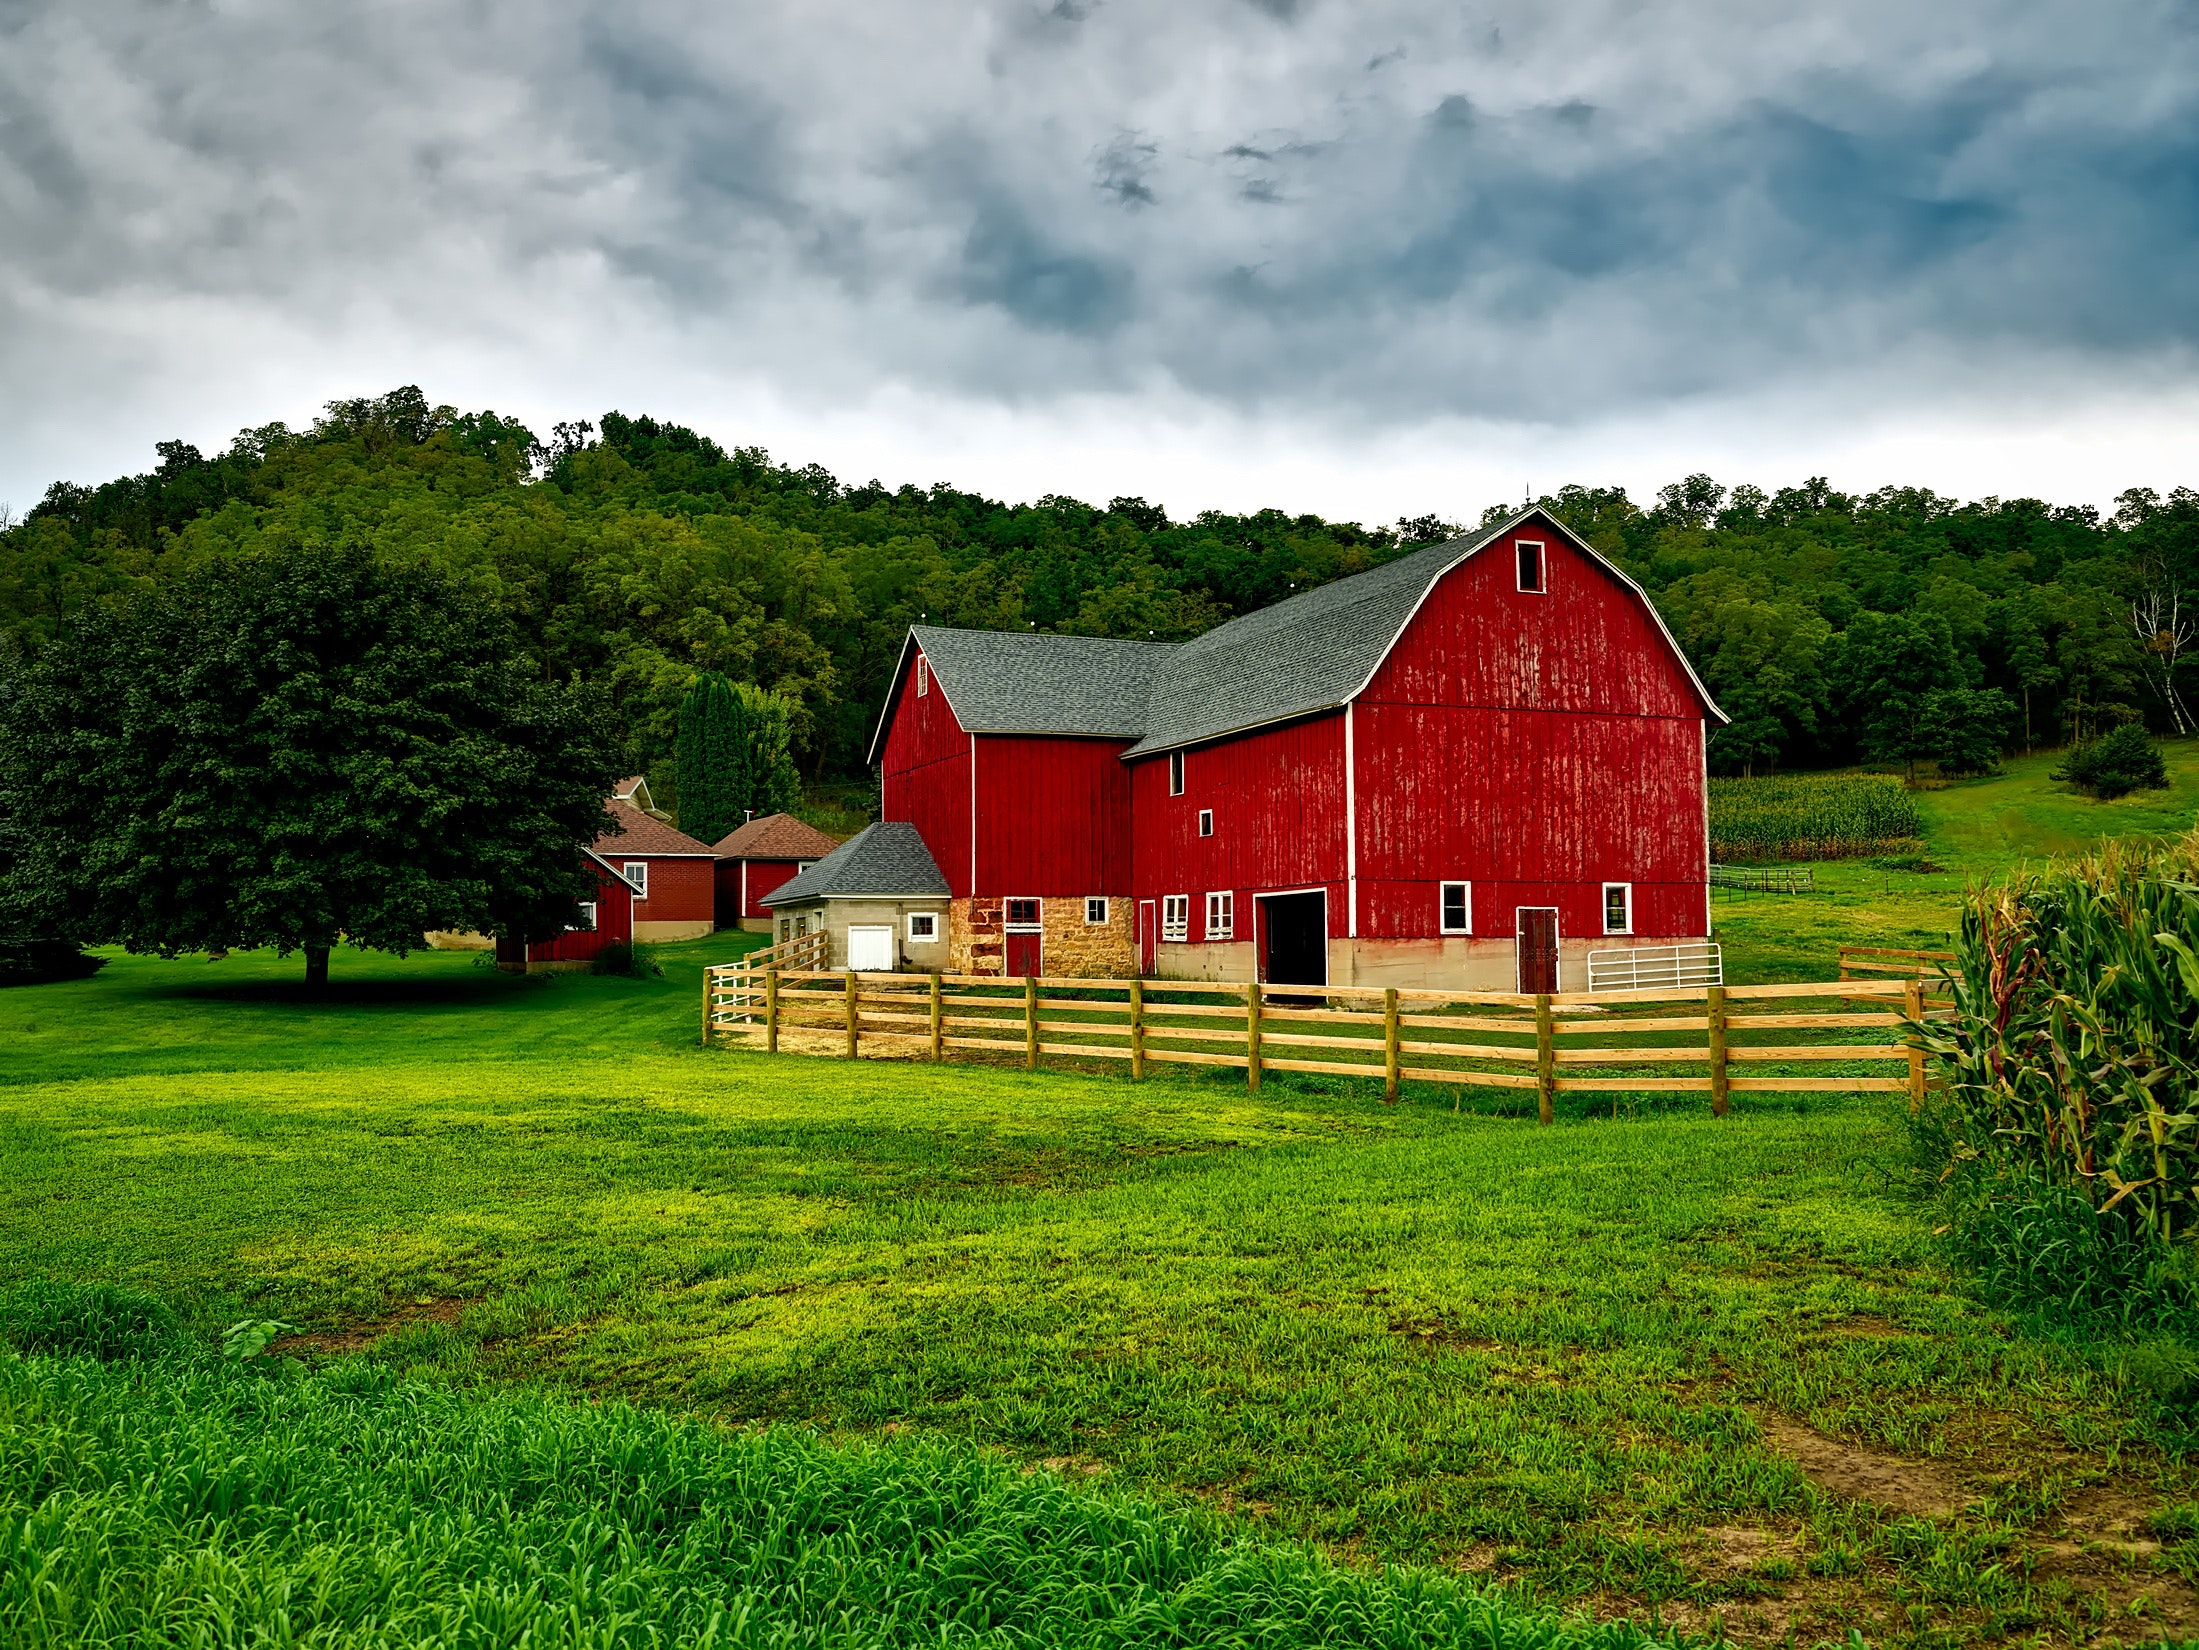 barn-clouds-corn-235725.jpg